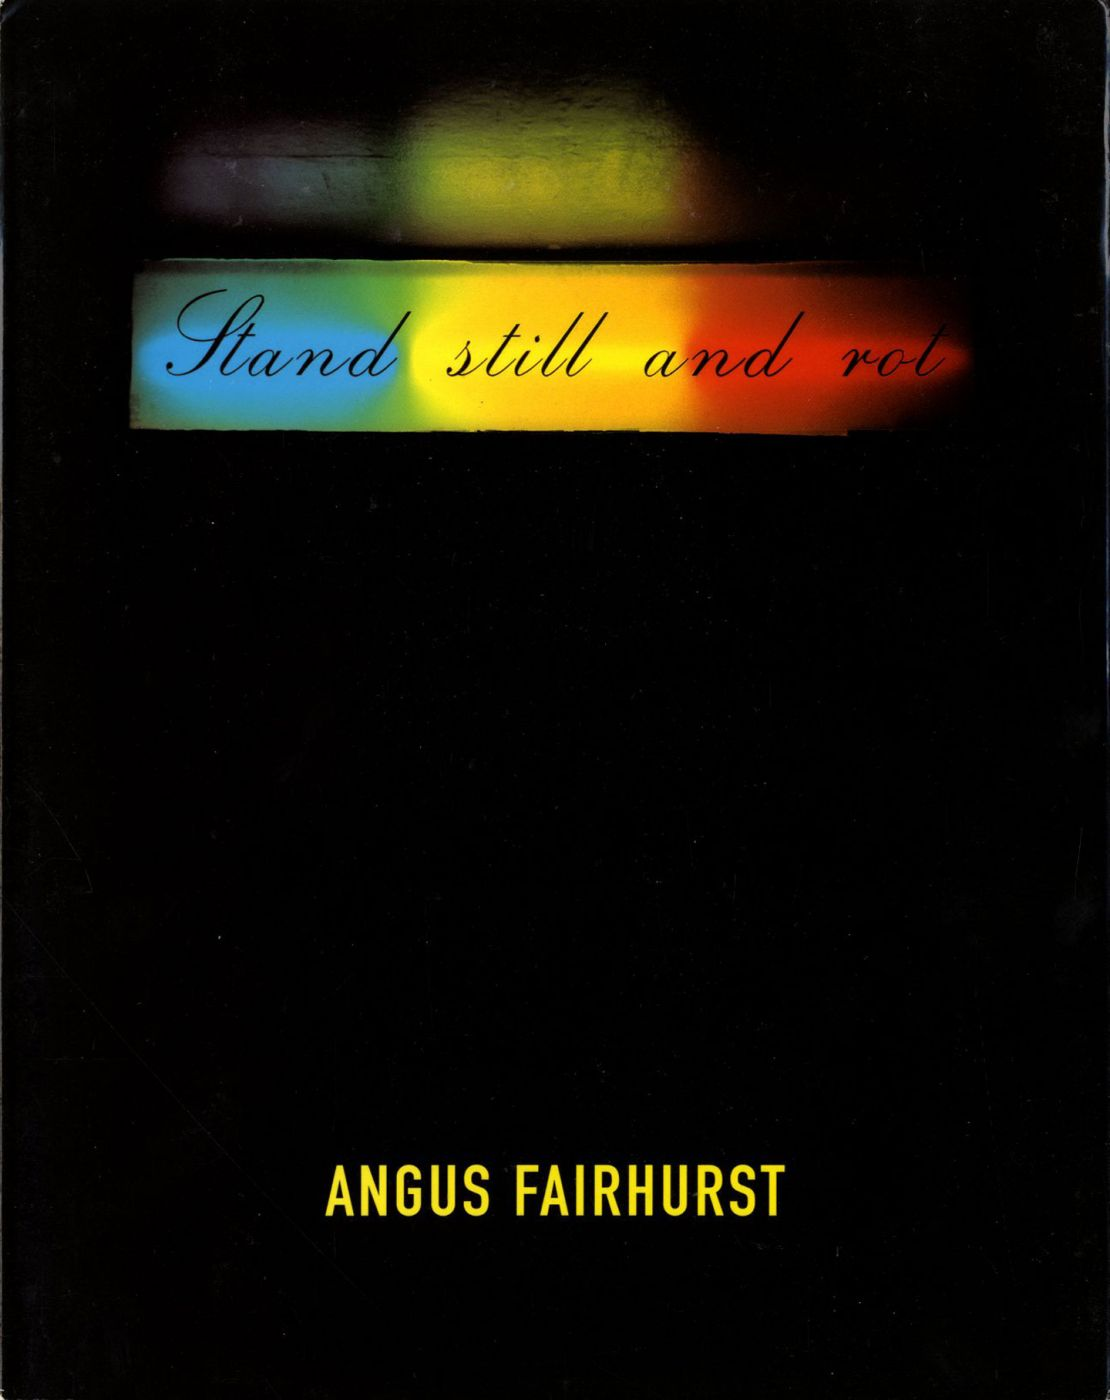 Angus Fairhurst: The Foundation